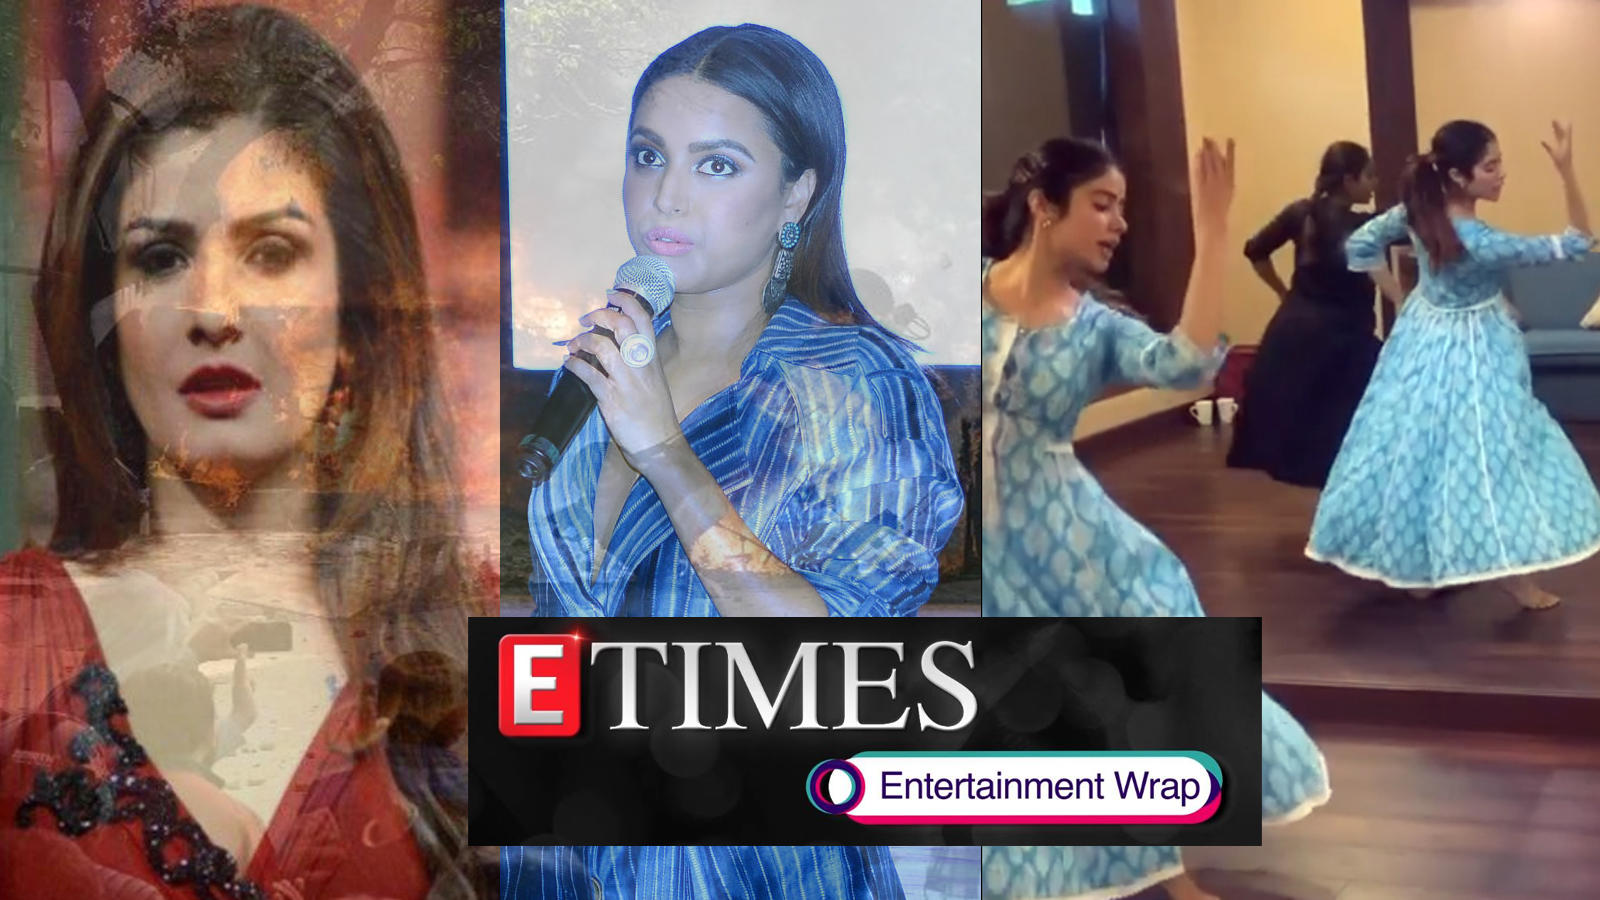 swara-bhasker-esha-gupta-raveena-tandon-among-other-b-wood-stars-condemn-violence-in-delhi-janhvi-kapoor-dances-on-piya-tose-naina-lage-re-and-more